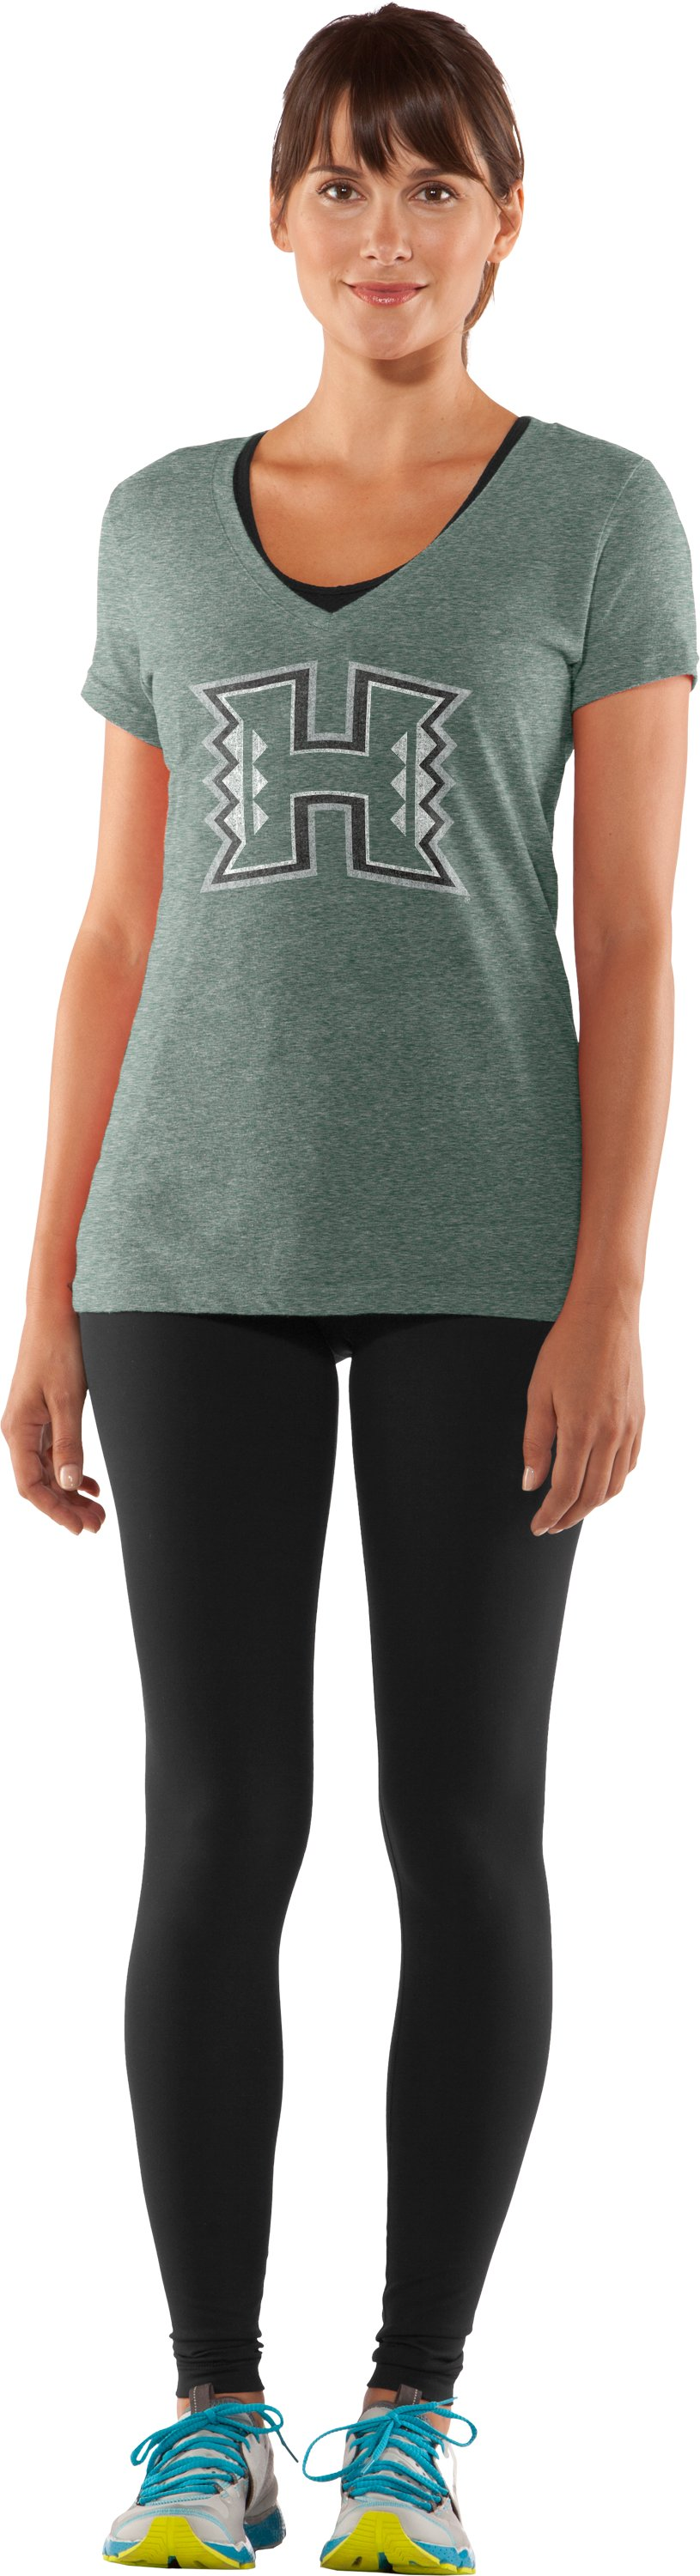 Women's Hawai'i Under Armour® Legacy T-Shirt, Forest Green, Front